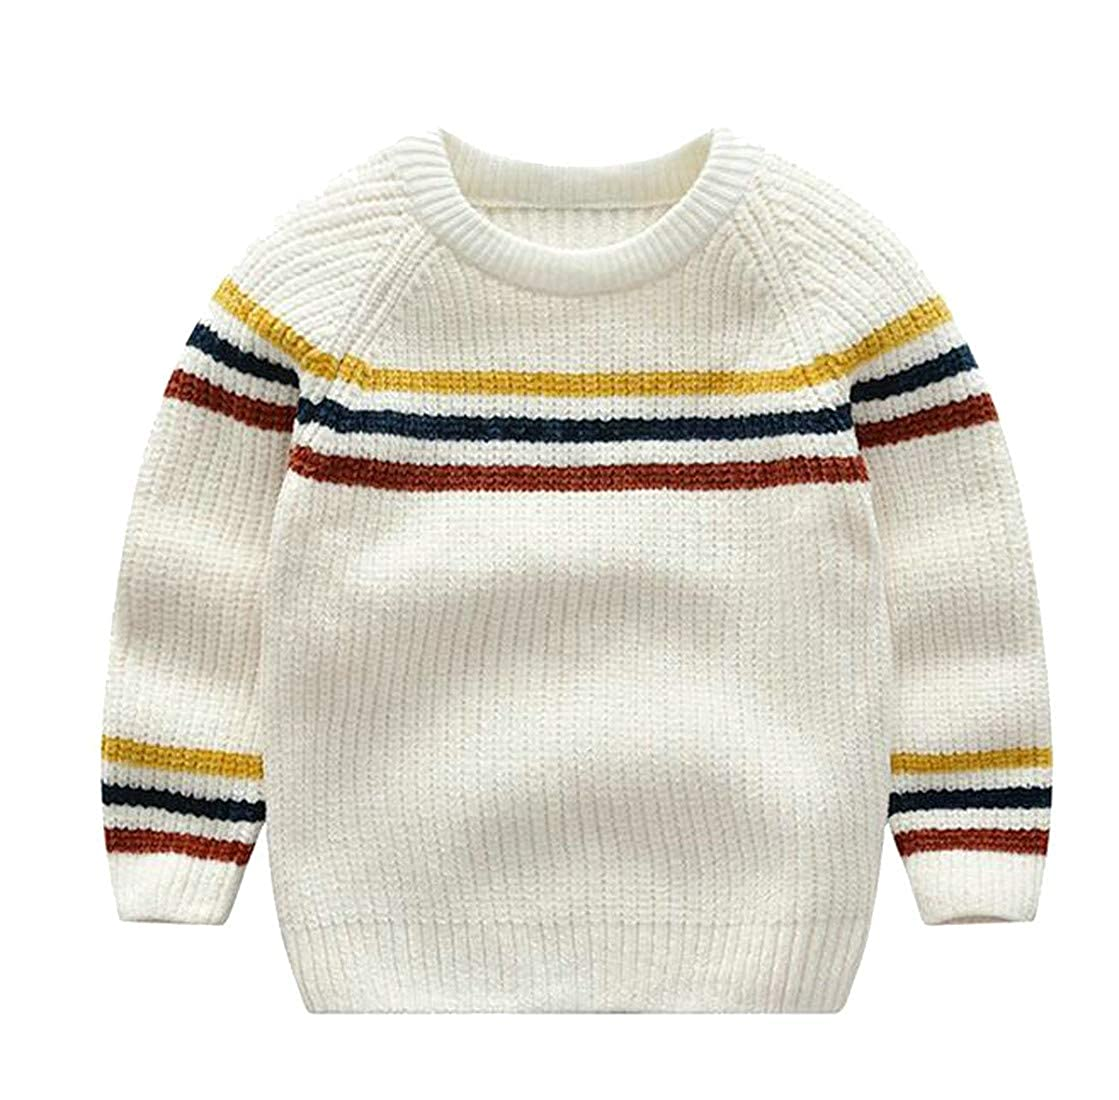 Hajotrawa Boys Knitted Round Neck Casual Stripe Cozy Pullover Jumper Sweaters